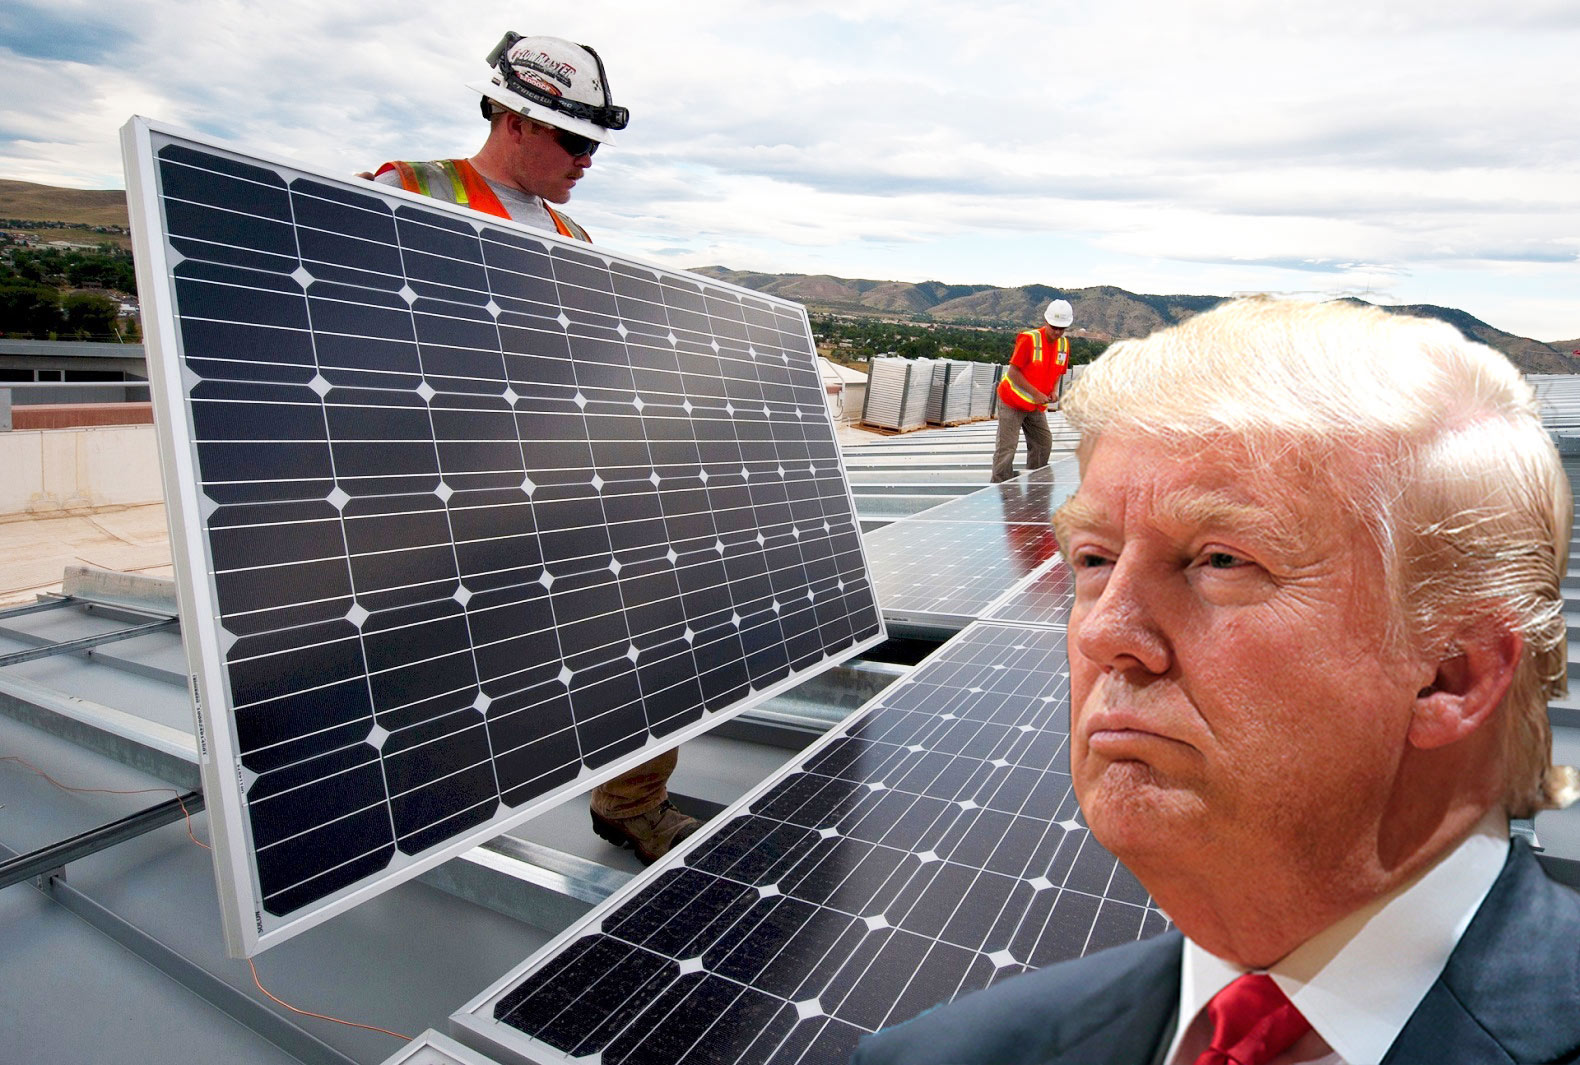 6 reasons the clean energy revolution doesn't need Trump's blessing